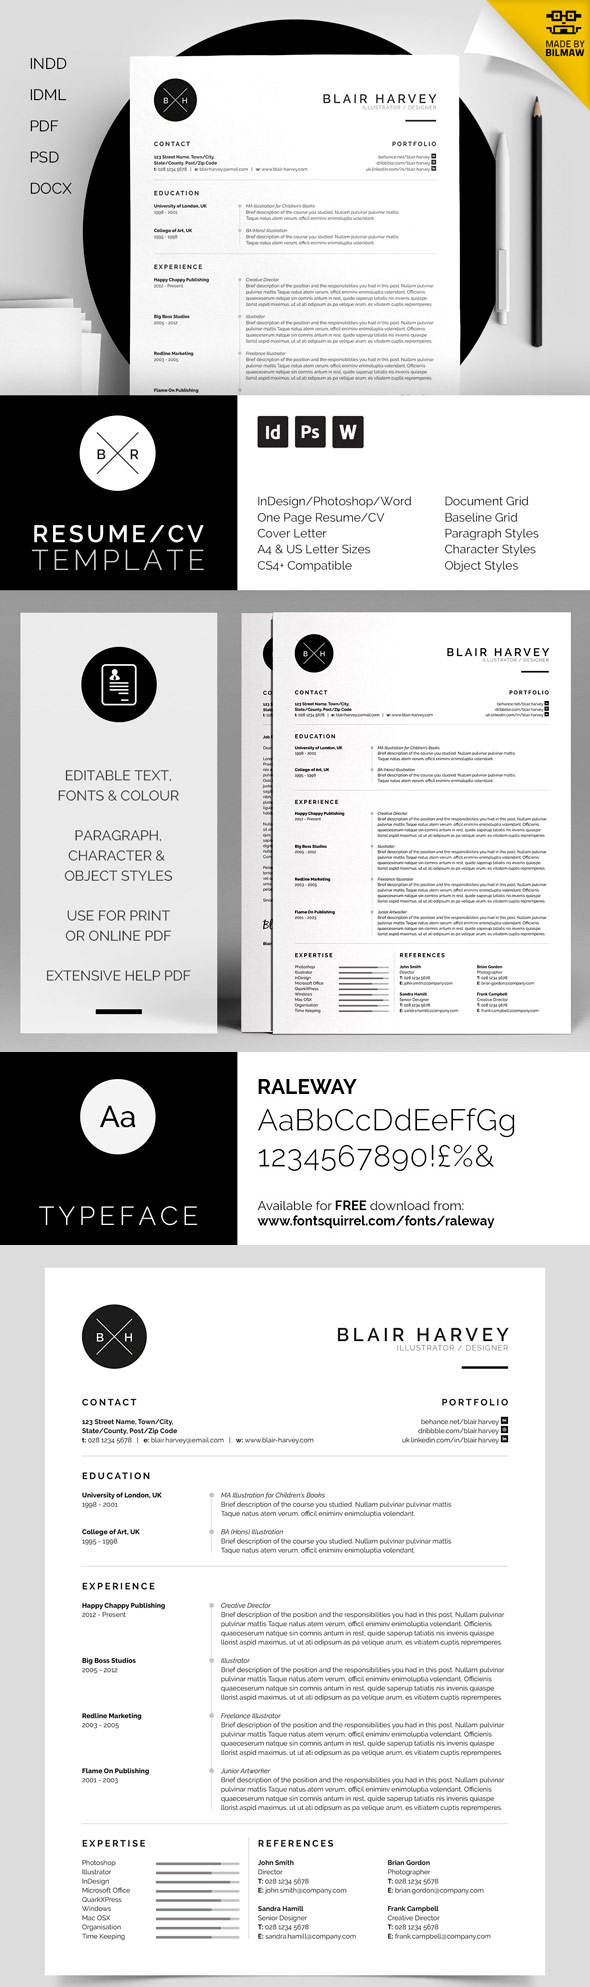 50 best minimal resume templates 21 - Best Fonts For Resume